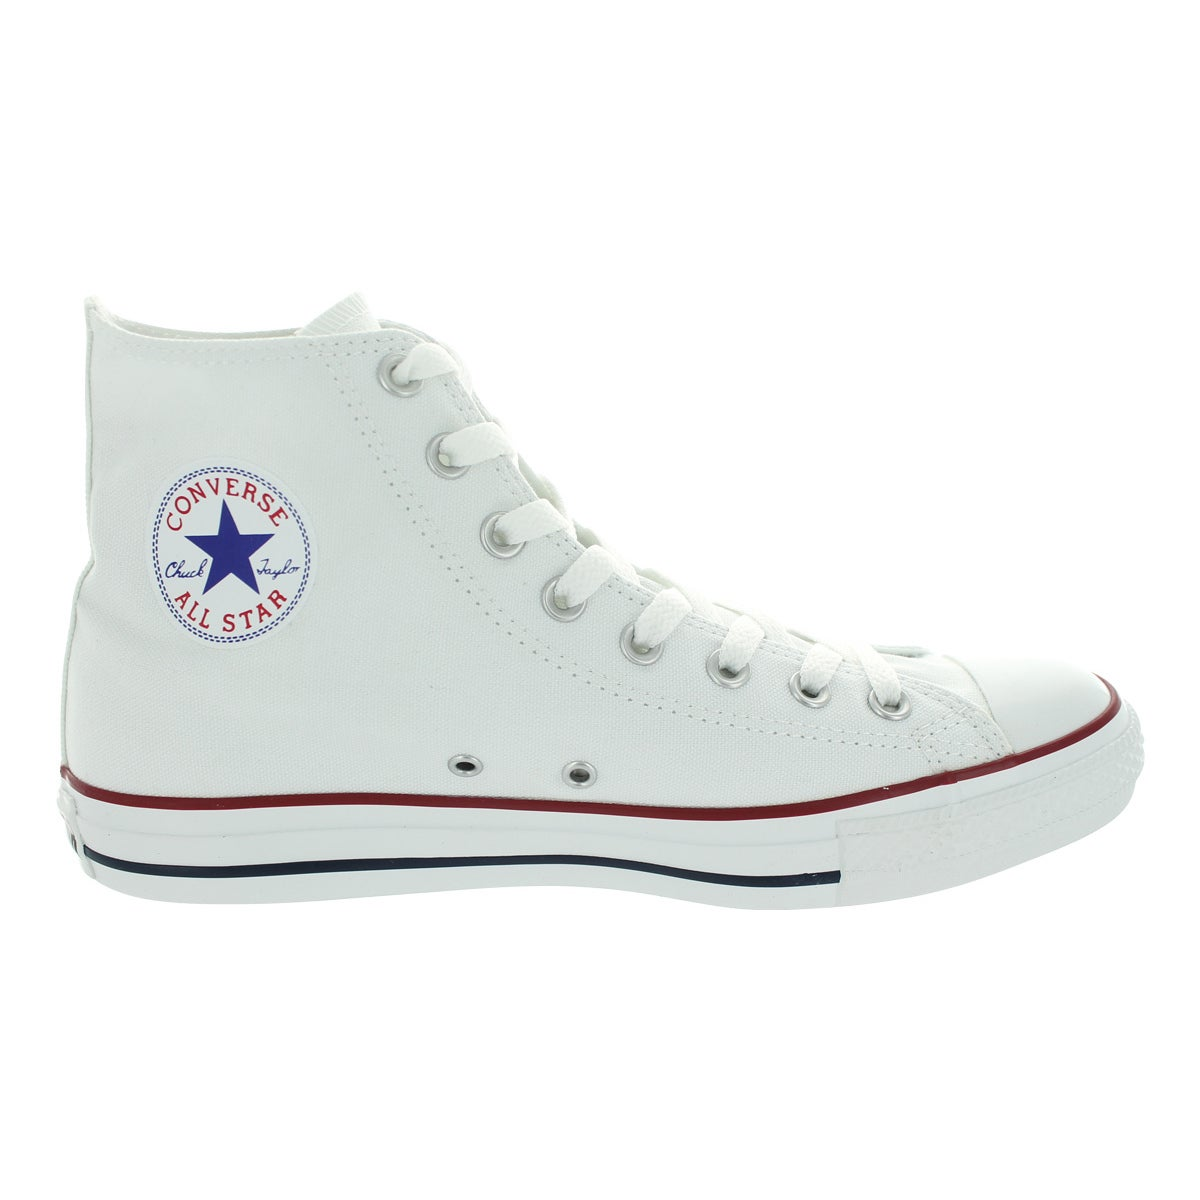 0498f3d6beb1 Shop Converse Chuck Taylor All Star High Optical White High Tops - Free  Shipping Today - Overstock - 12319057